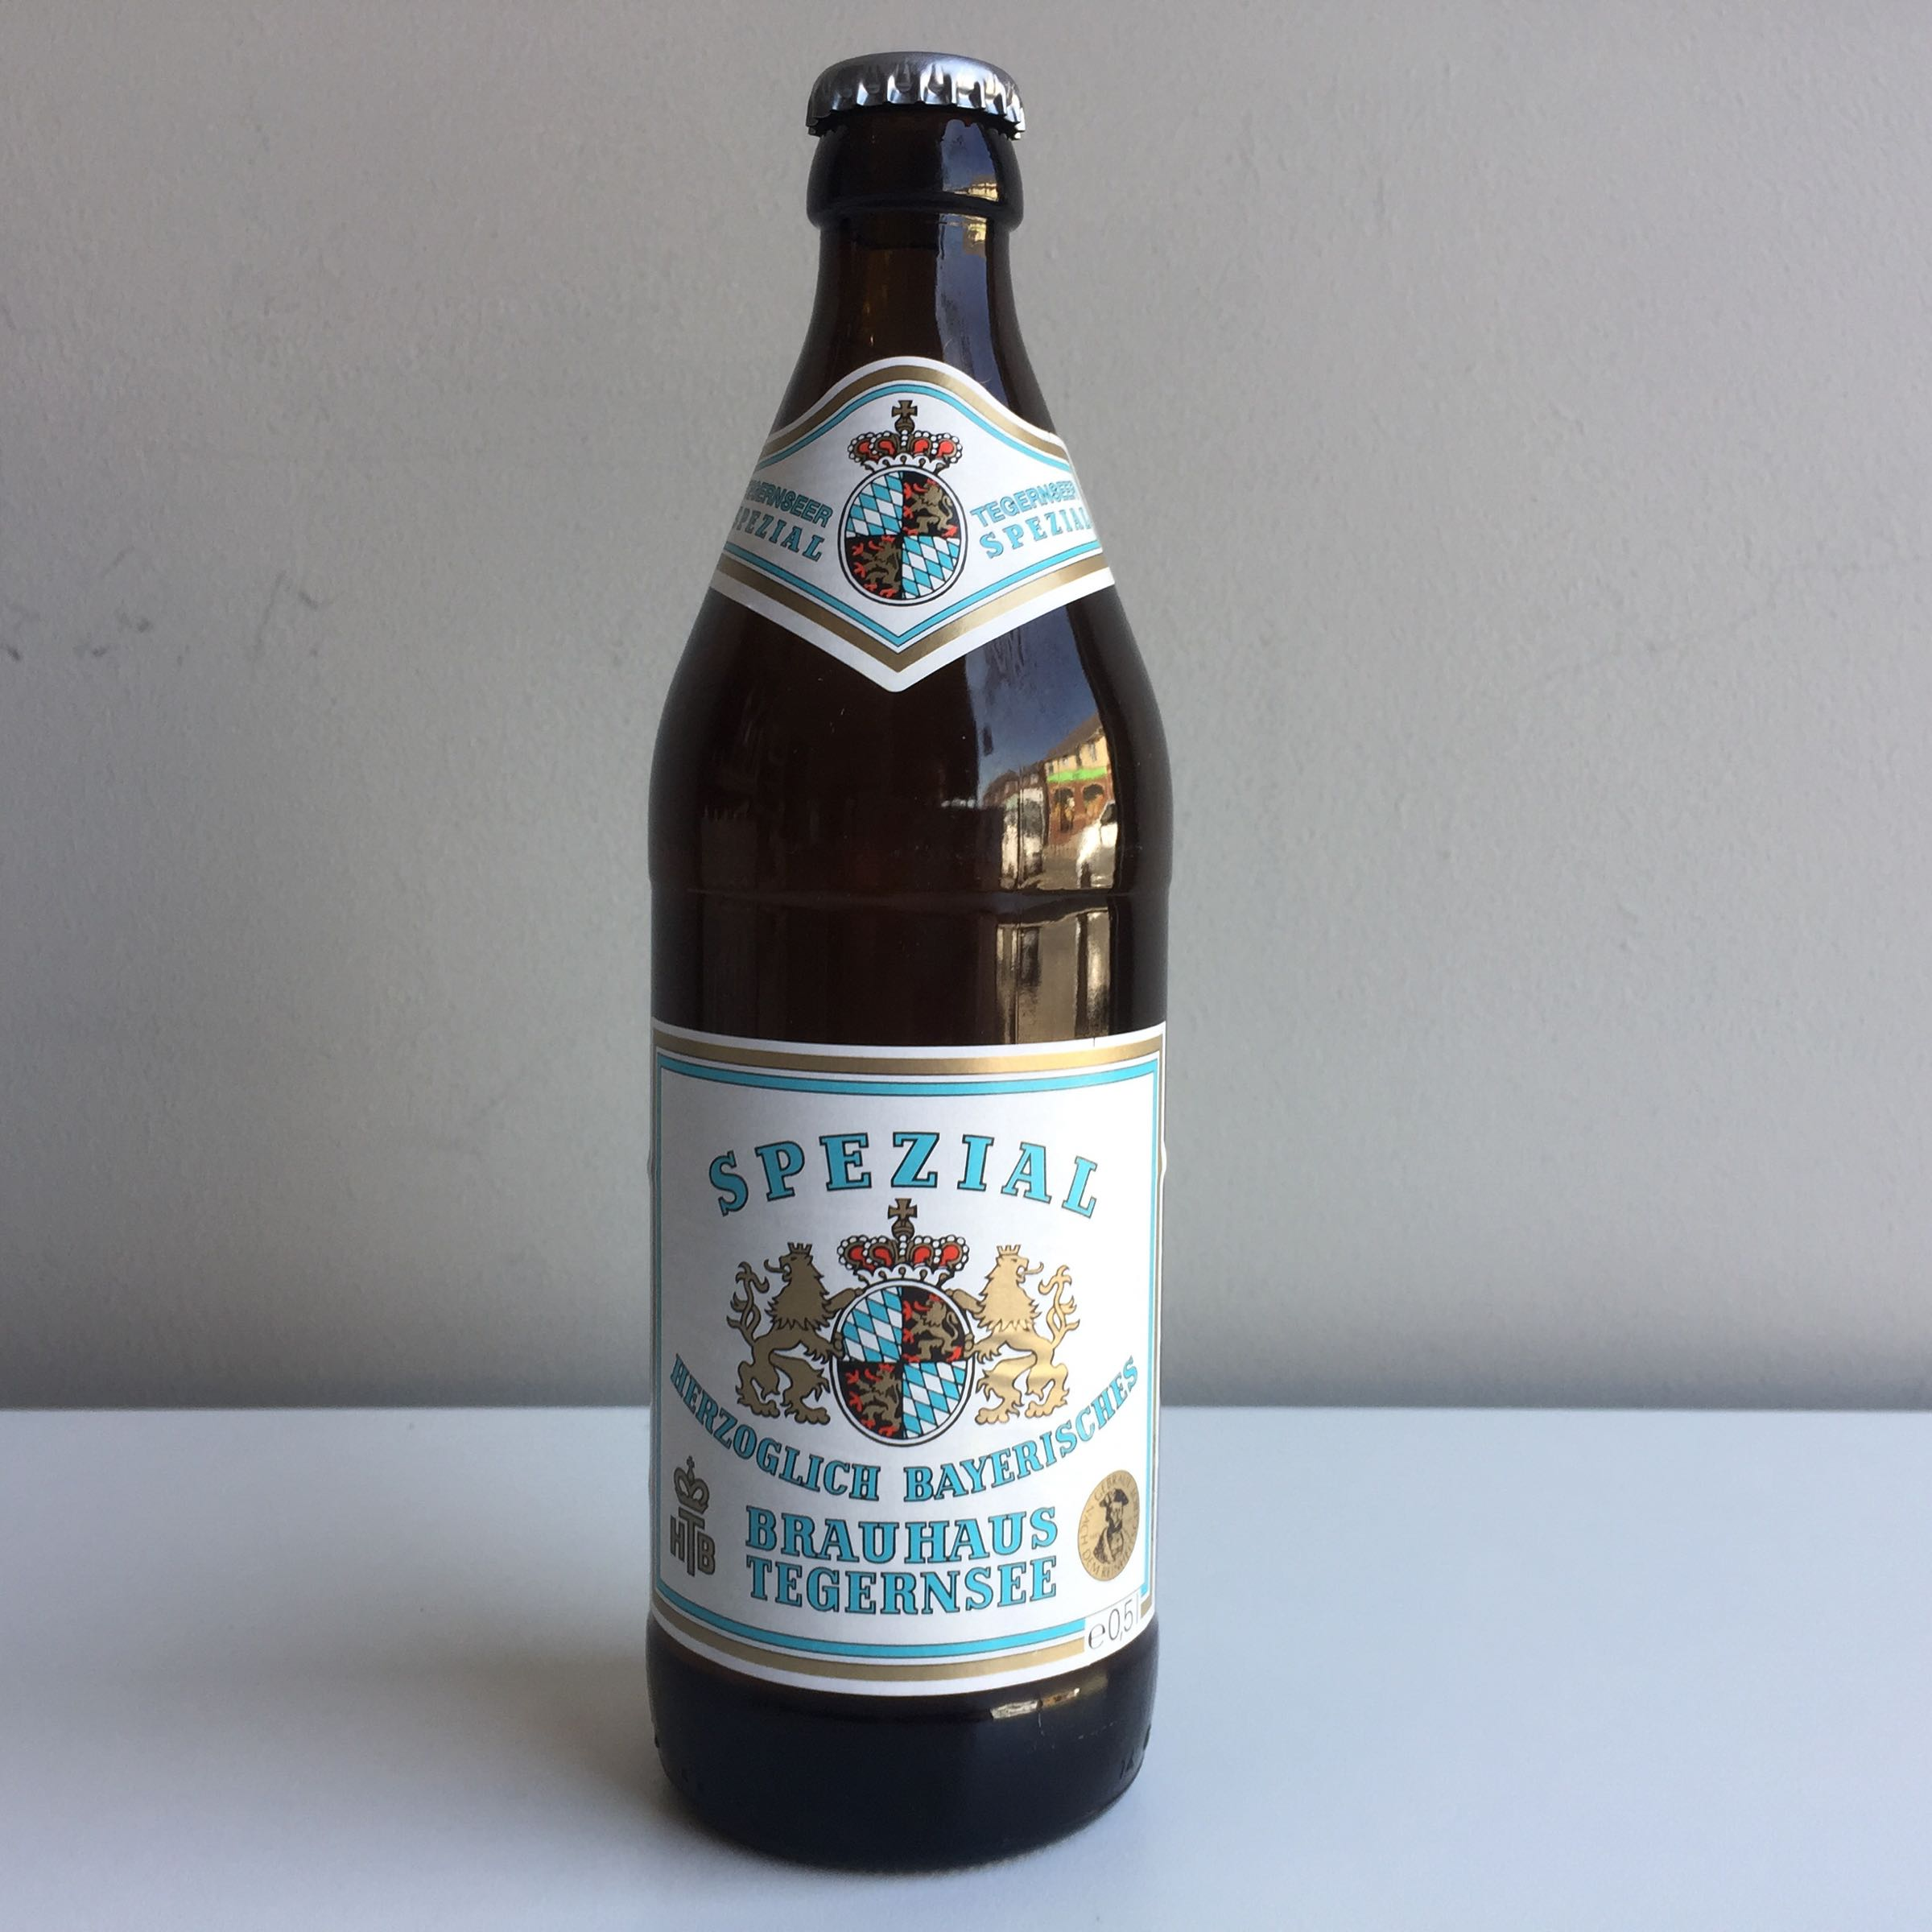 Tegernsee Spezial Lager 500ml 5.6% a ABV